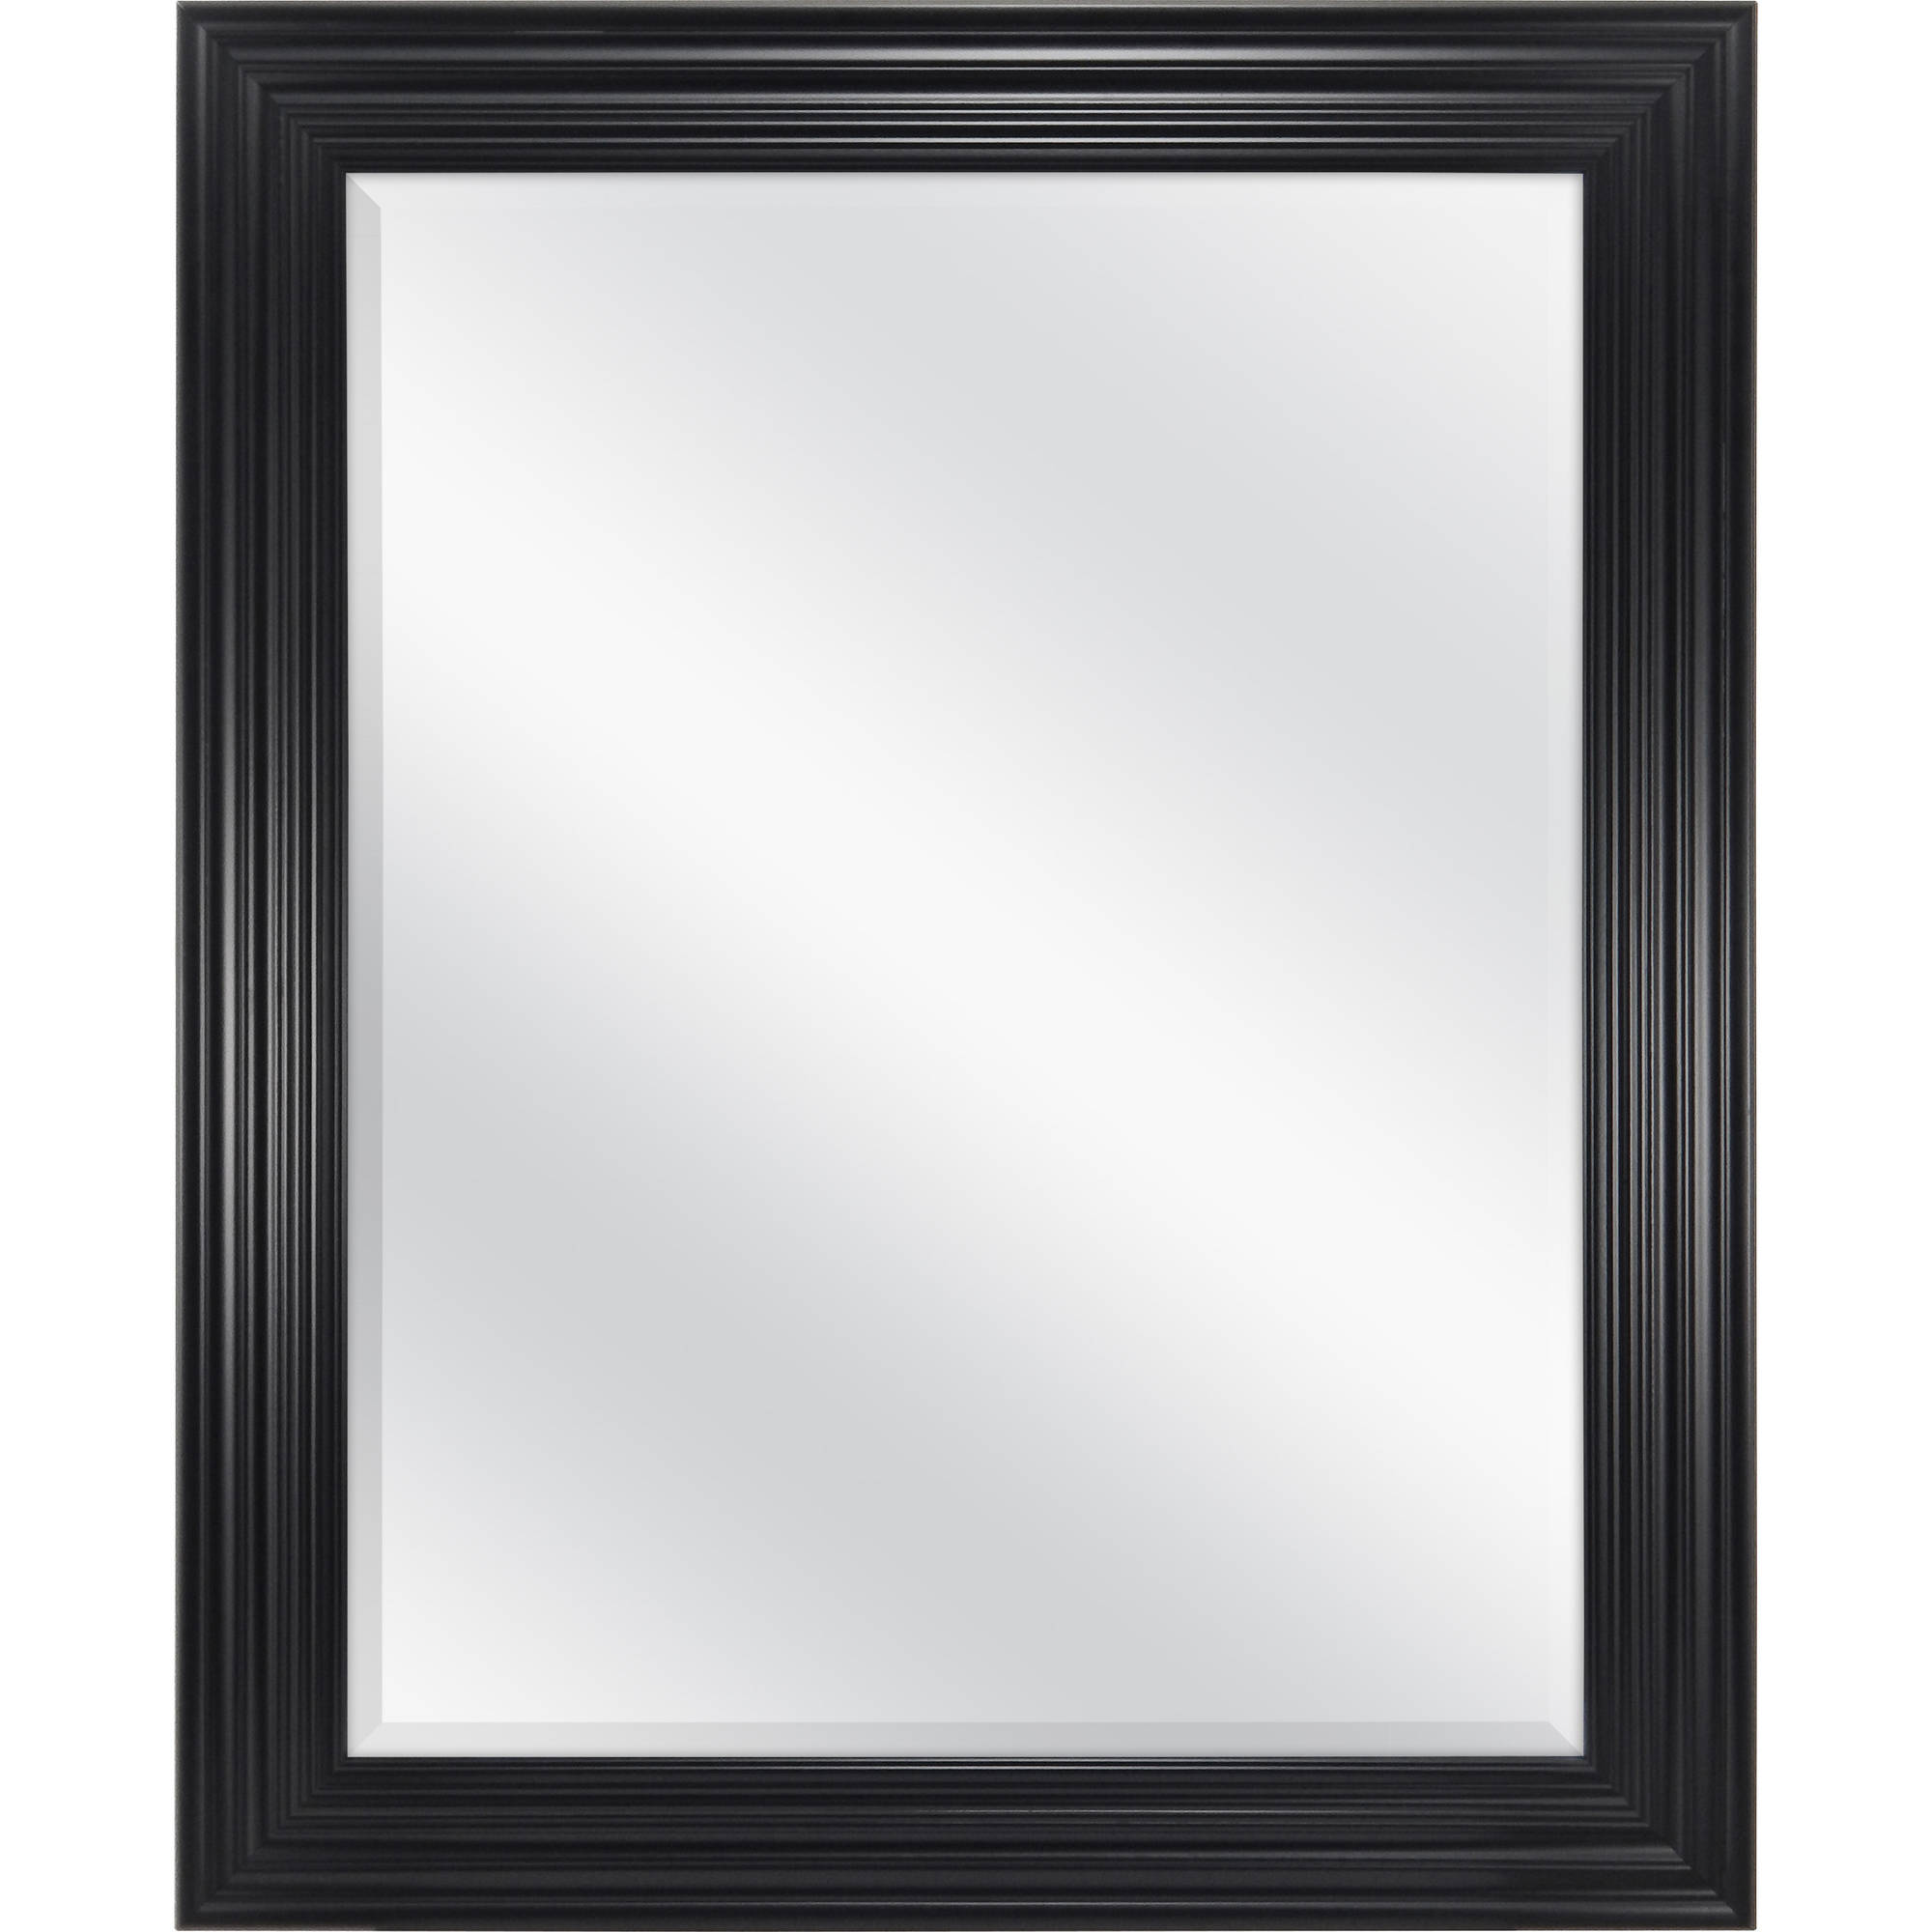 "Mainstays Classic Beveled Wall Mirror, 27"" x 33\ by"